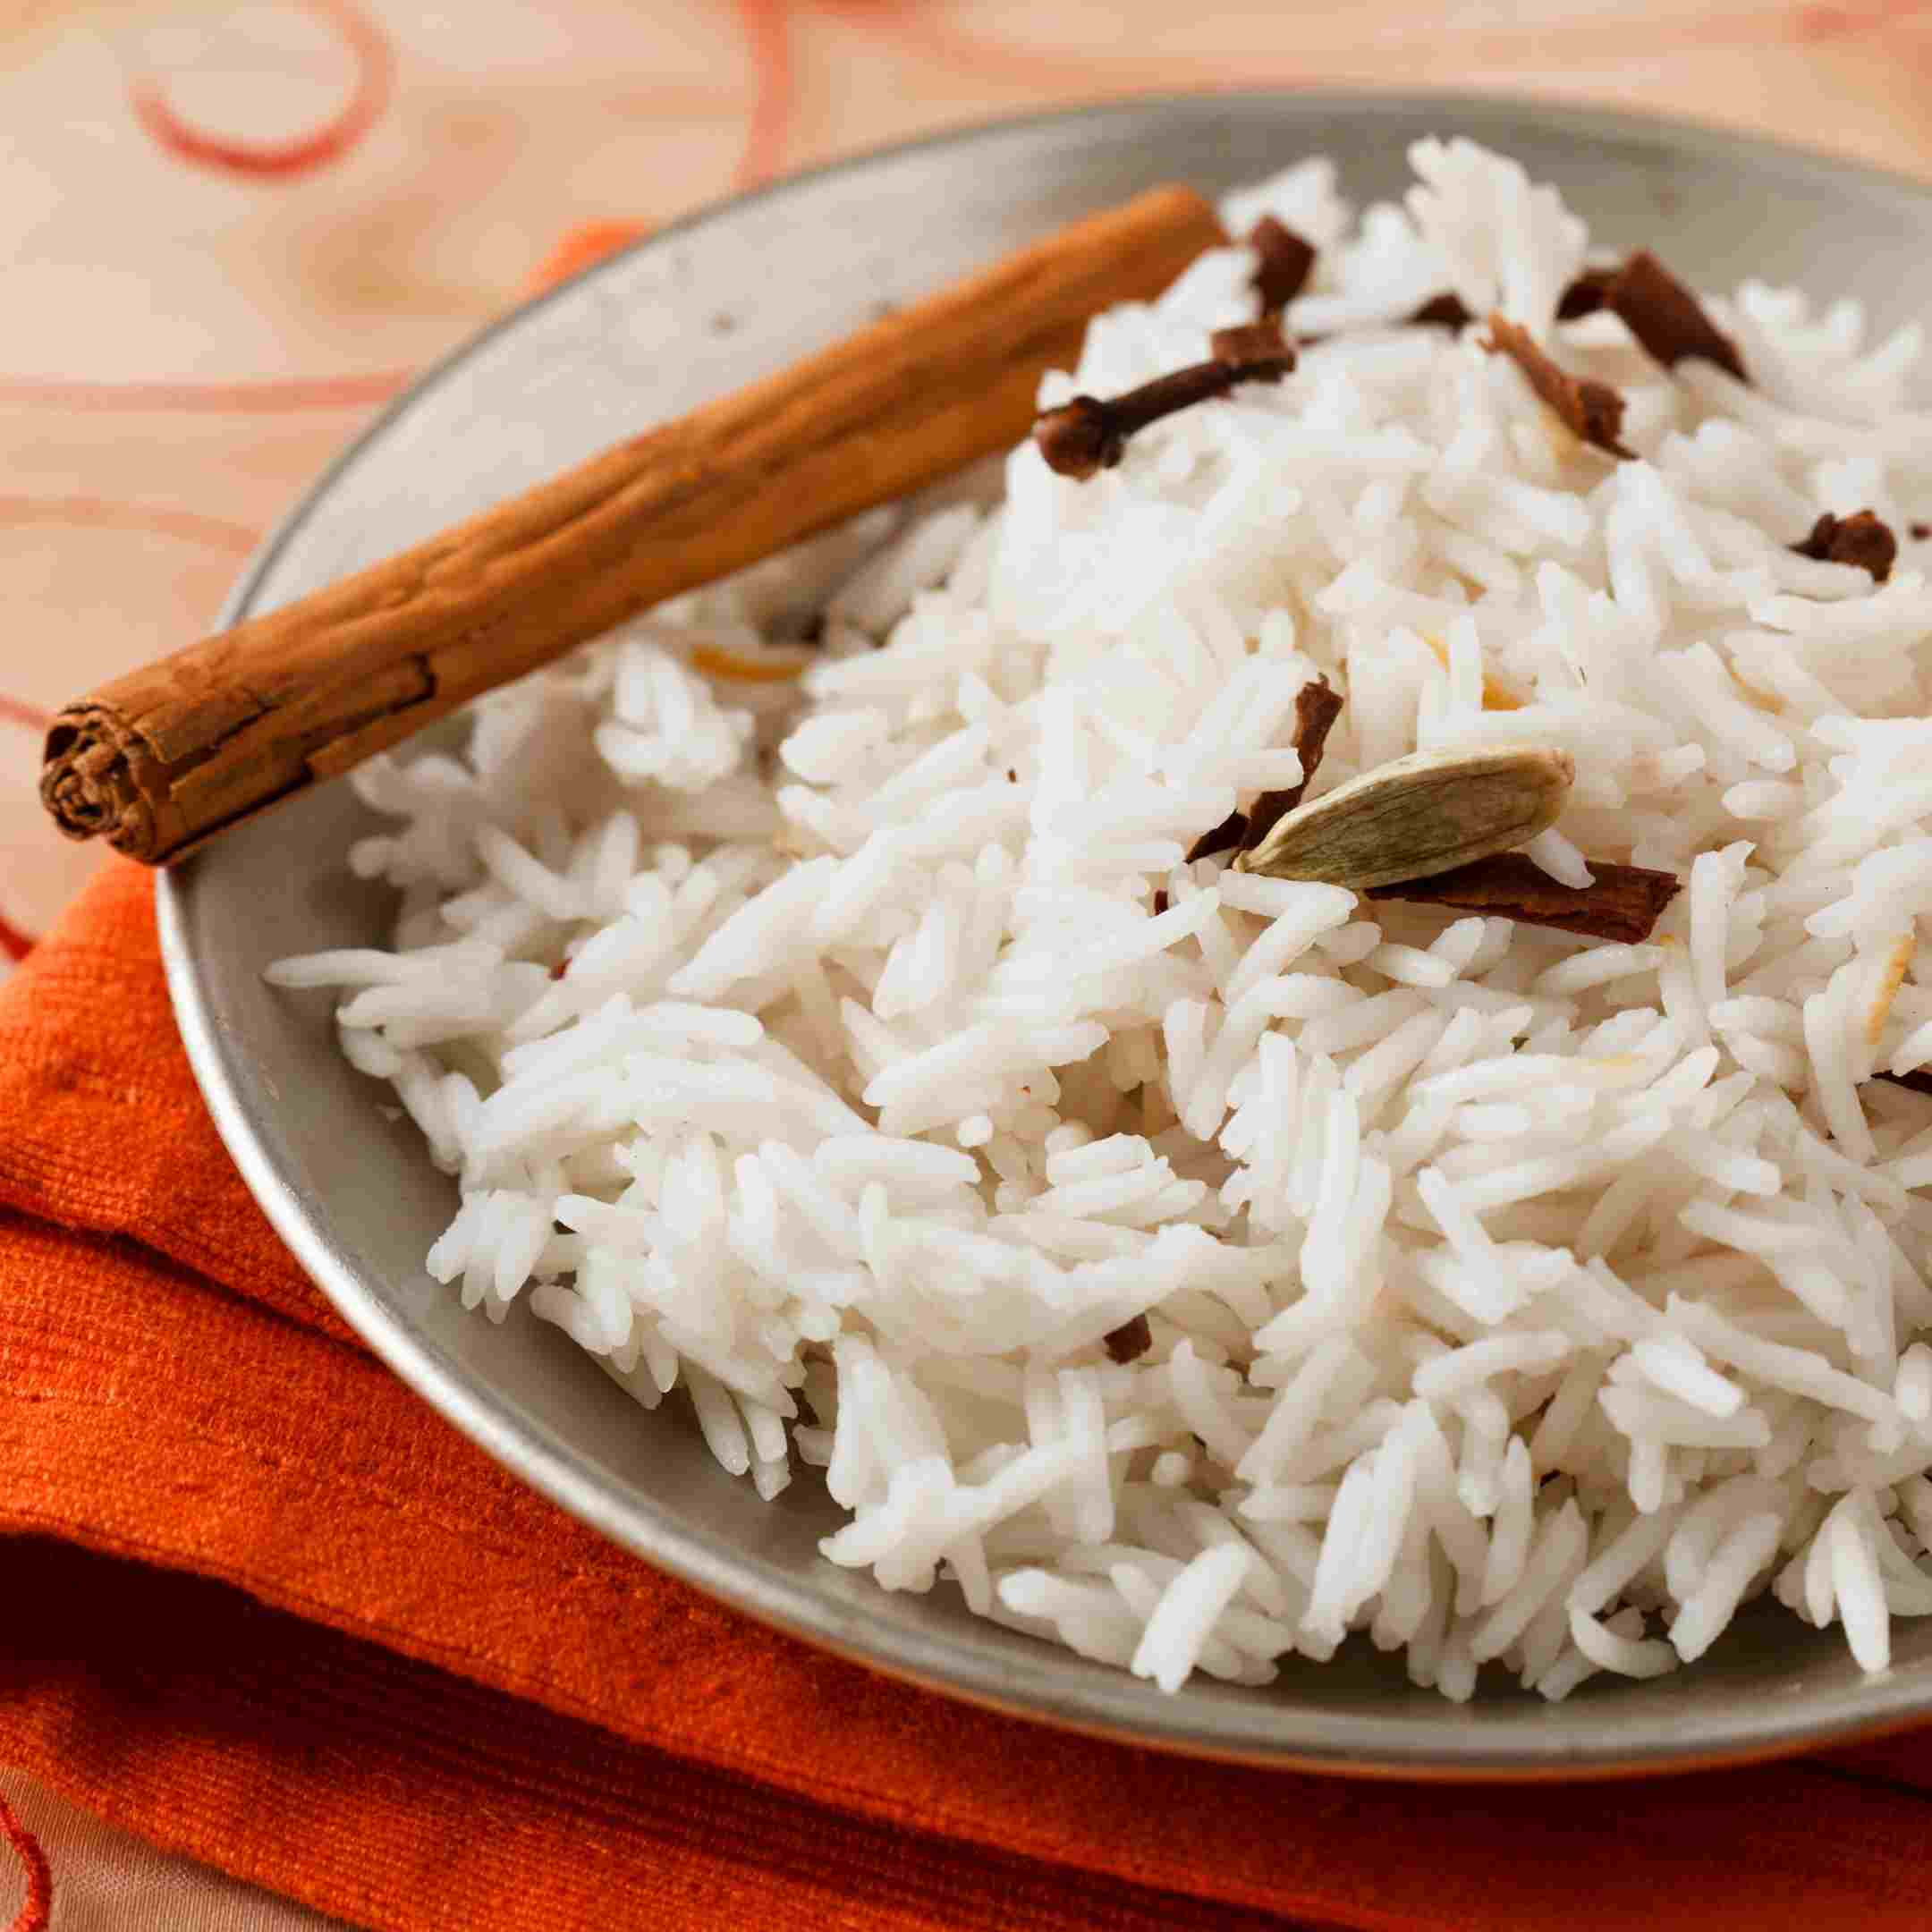 cinnamon flavored rice